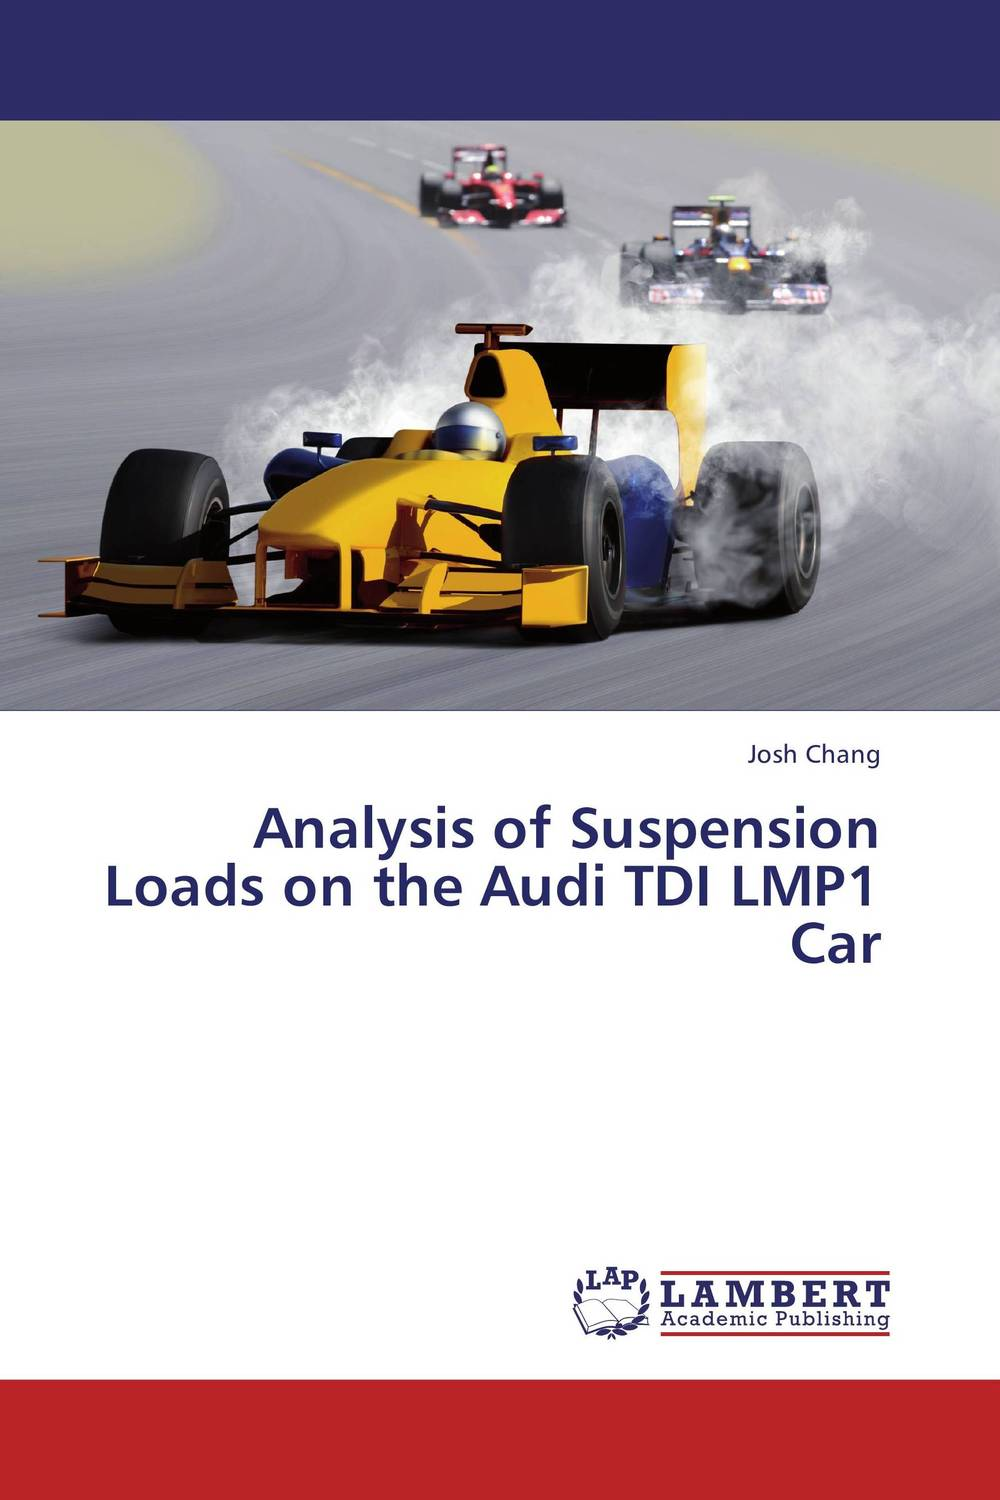 Analysis of Suspension Loads on the Audi TDI LMP1 Car the internal load analysis in soccer